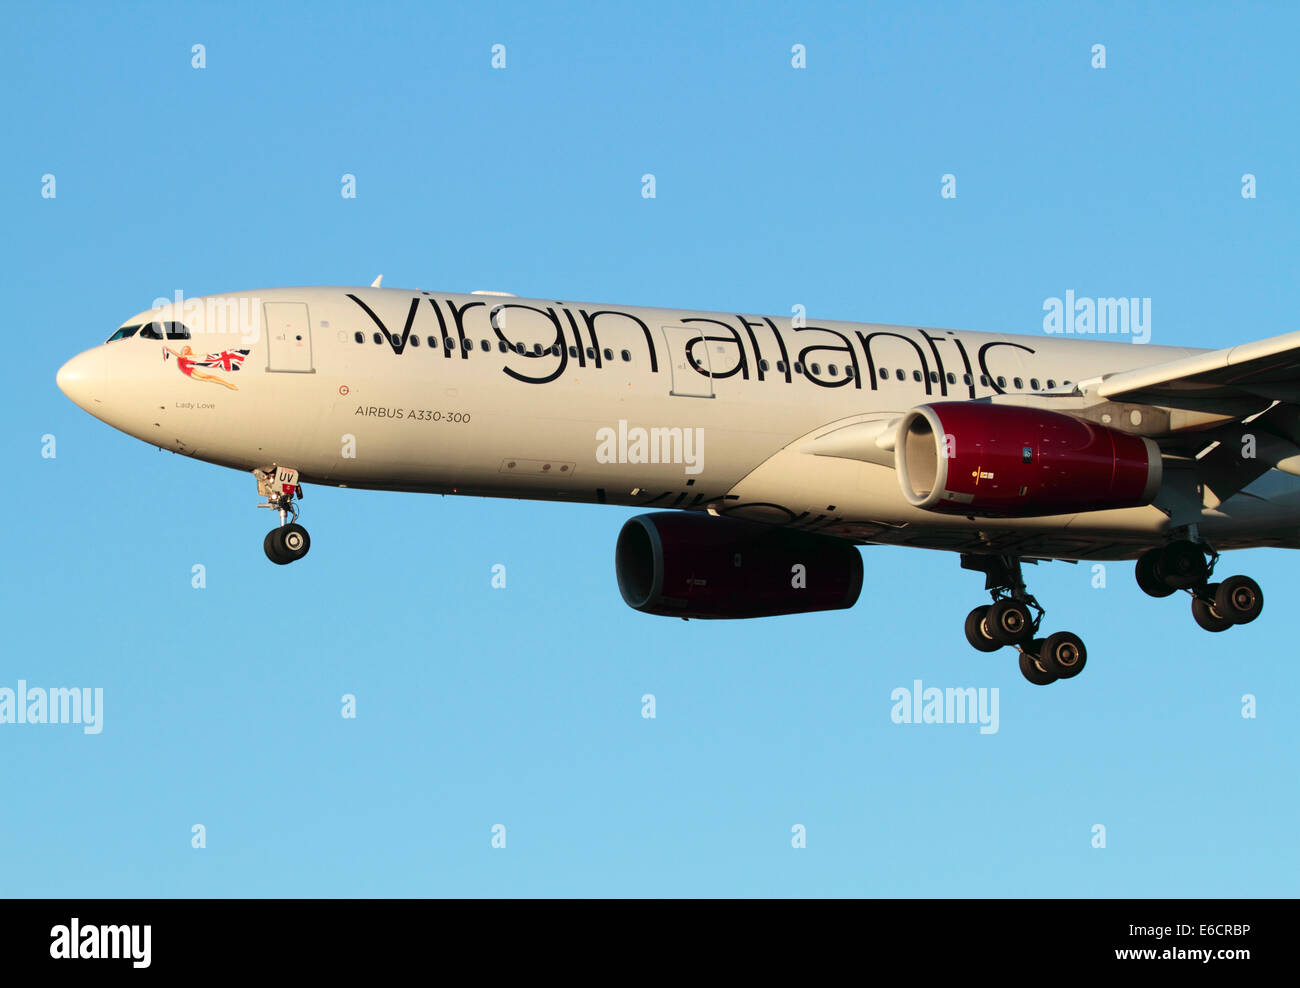 Virgin Atlantic Airways Airbus A330-300 on final approach at sunset - Stock Image